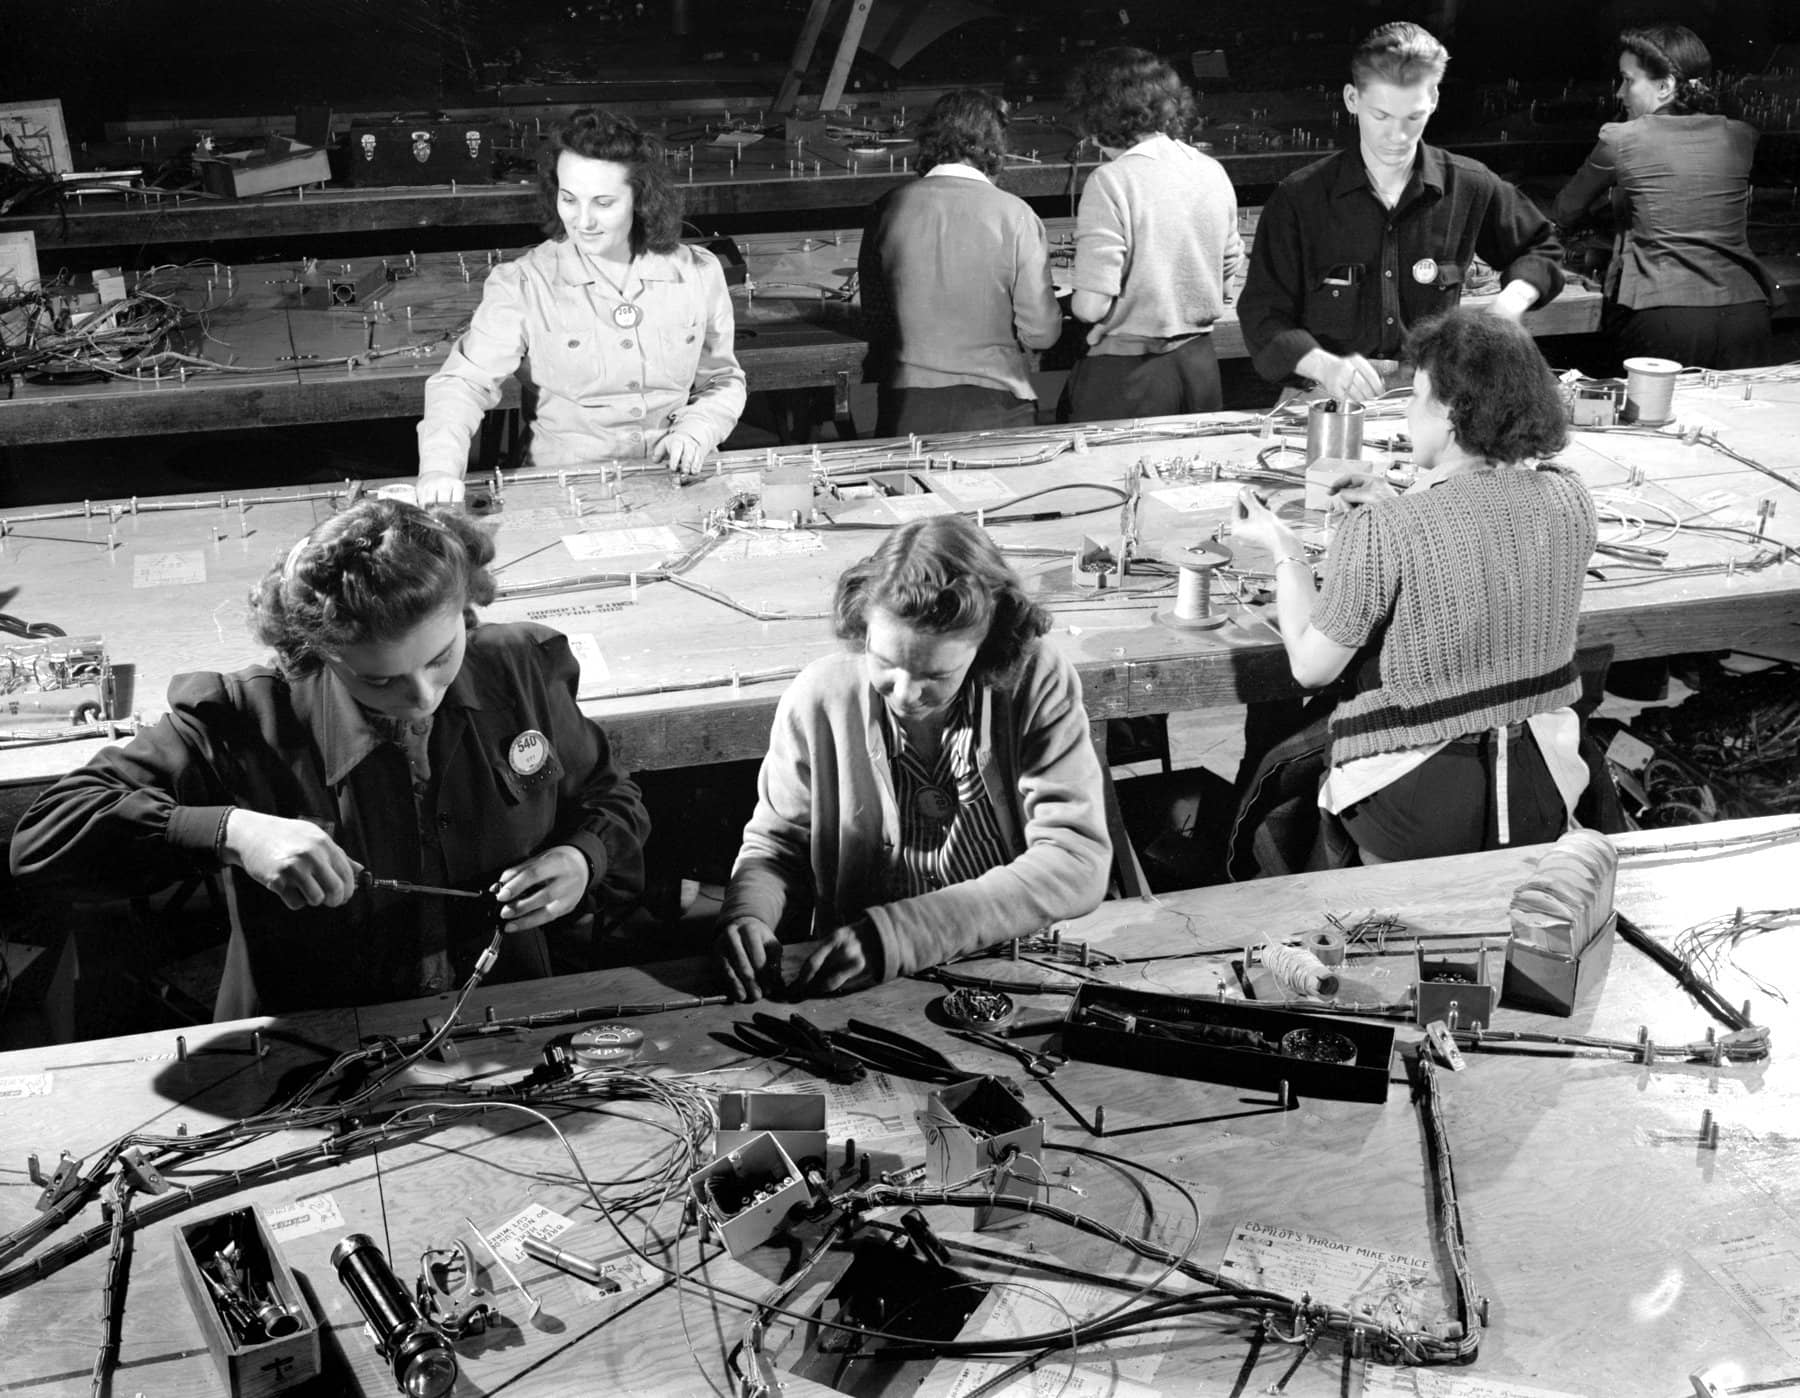 Electrical wiring assemblies for B-17F